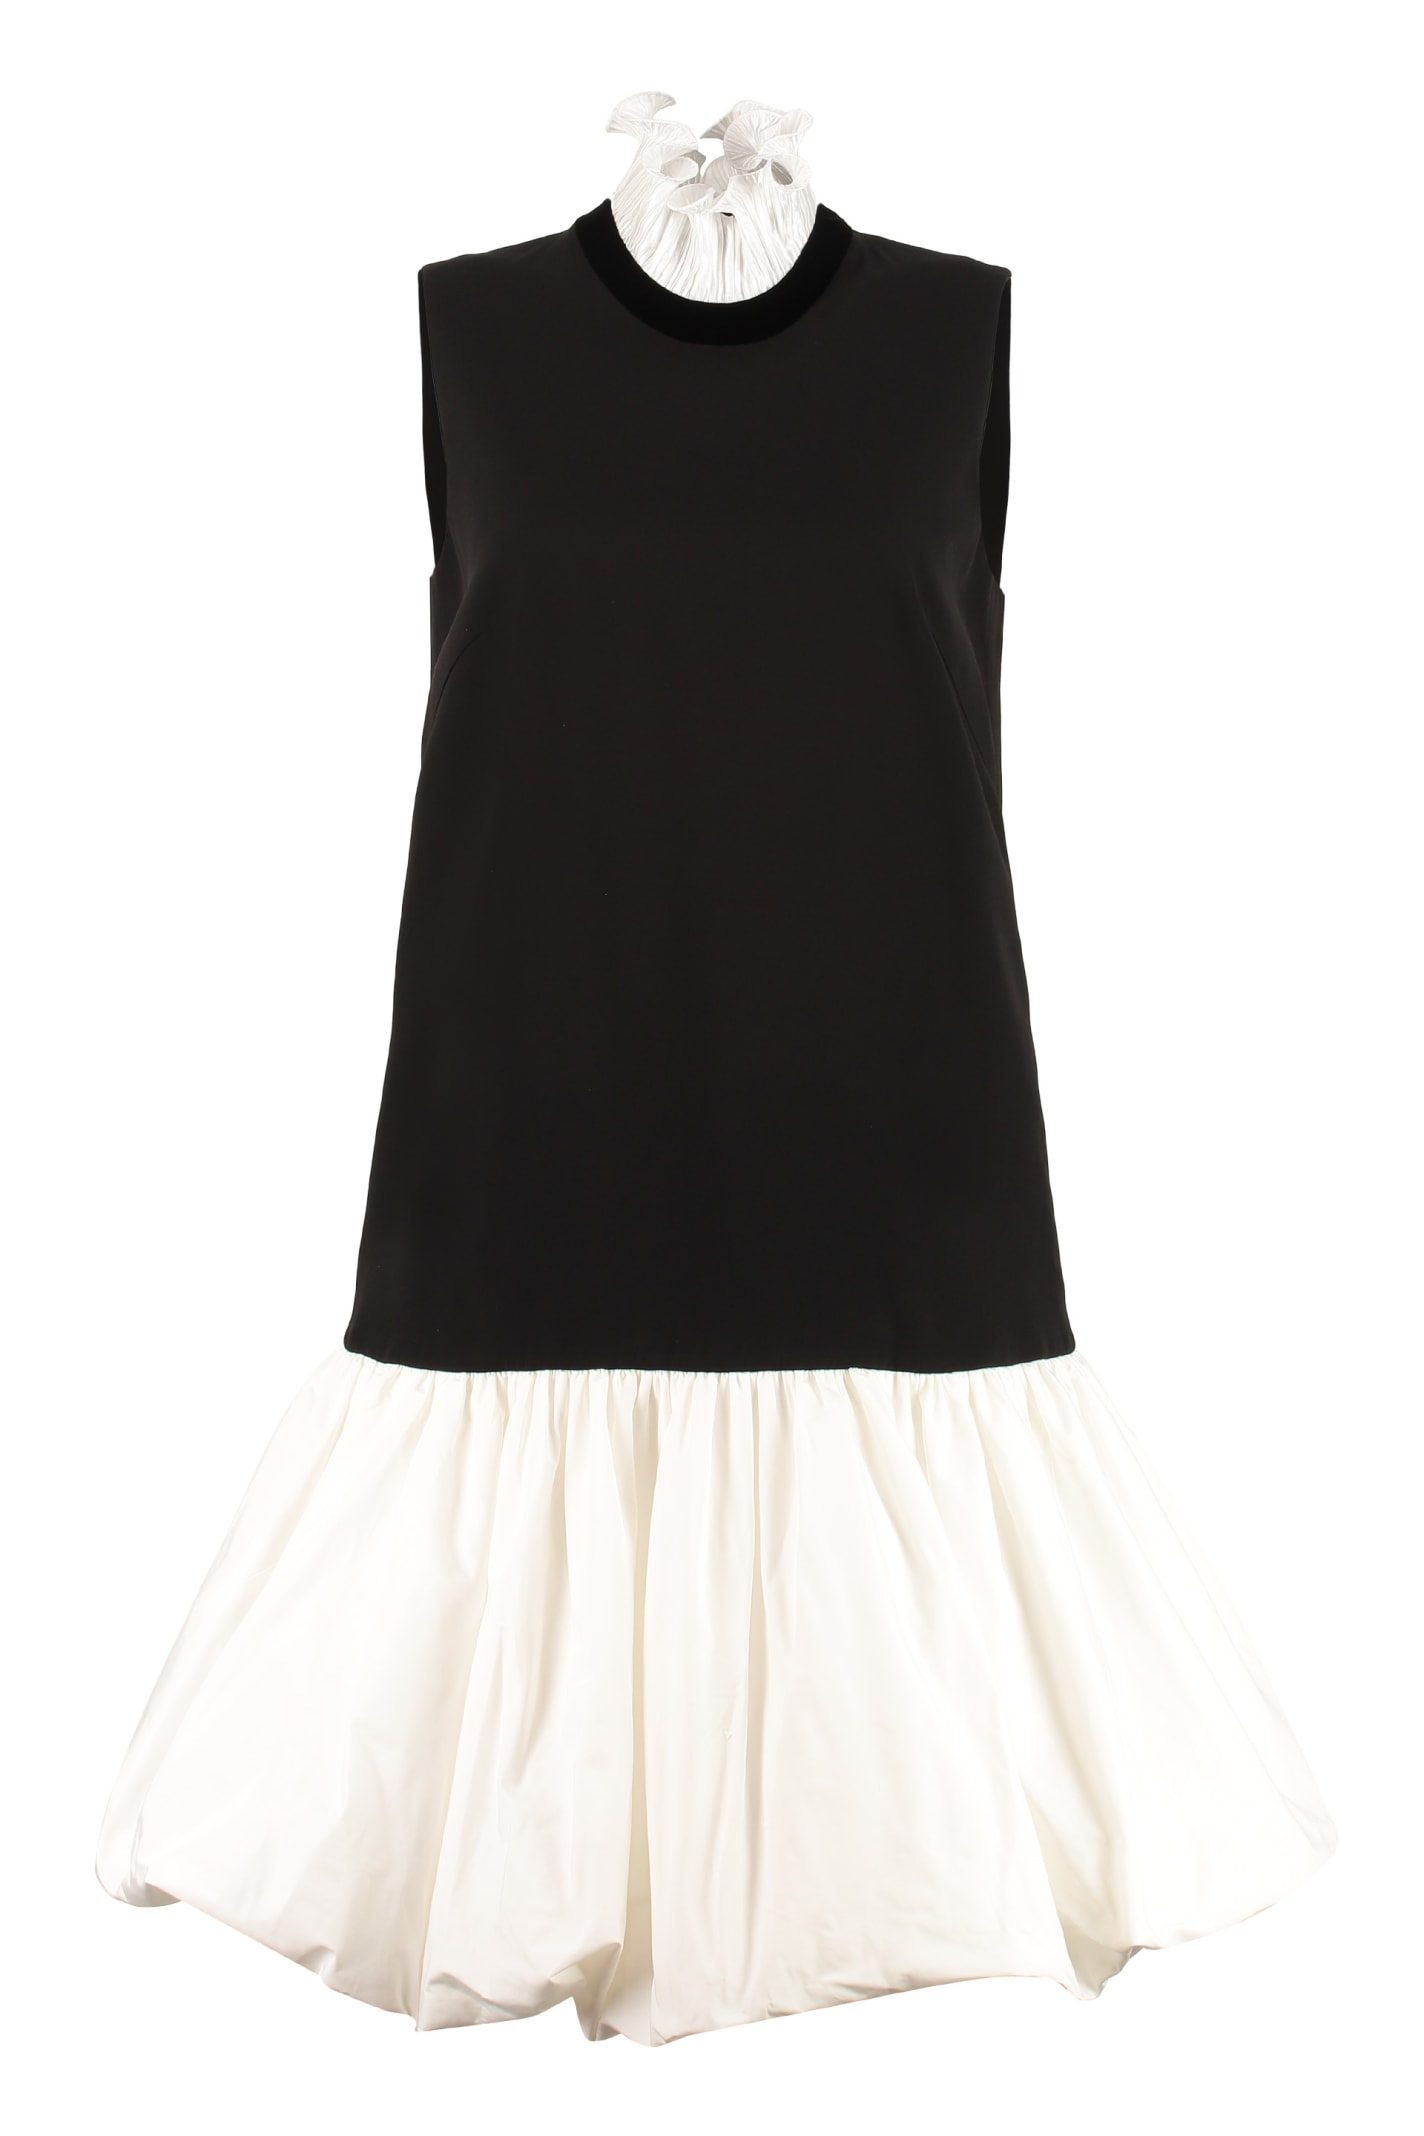 Givenchy Cady Mini Dress